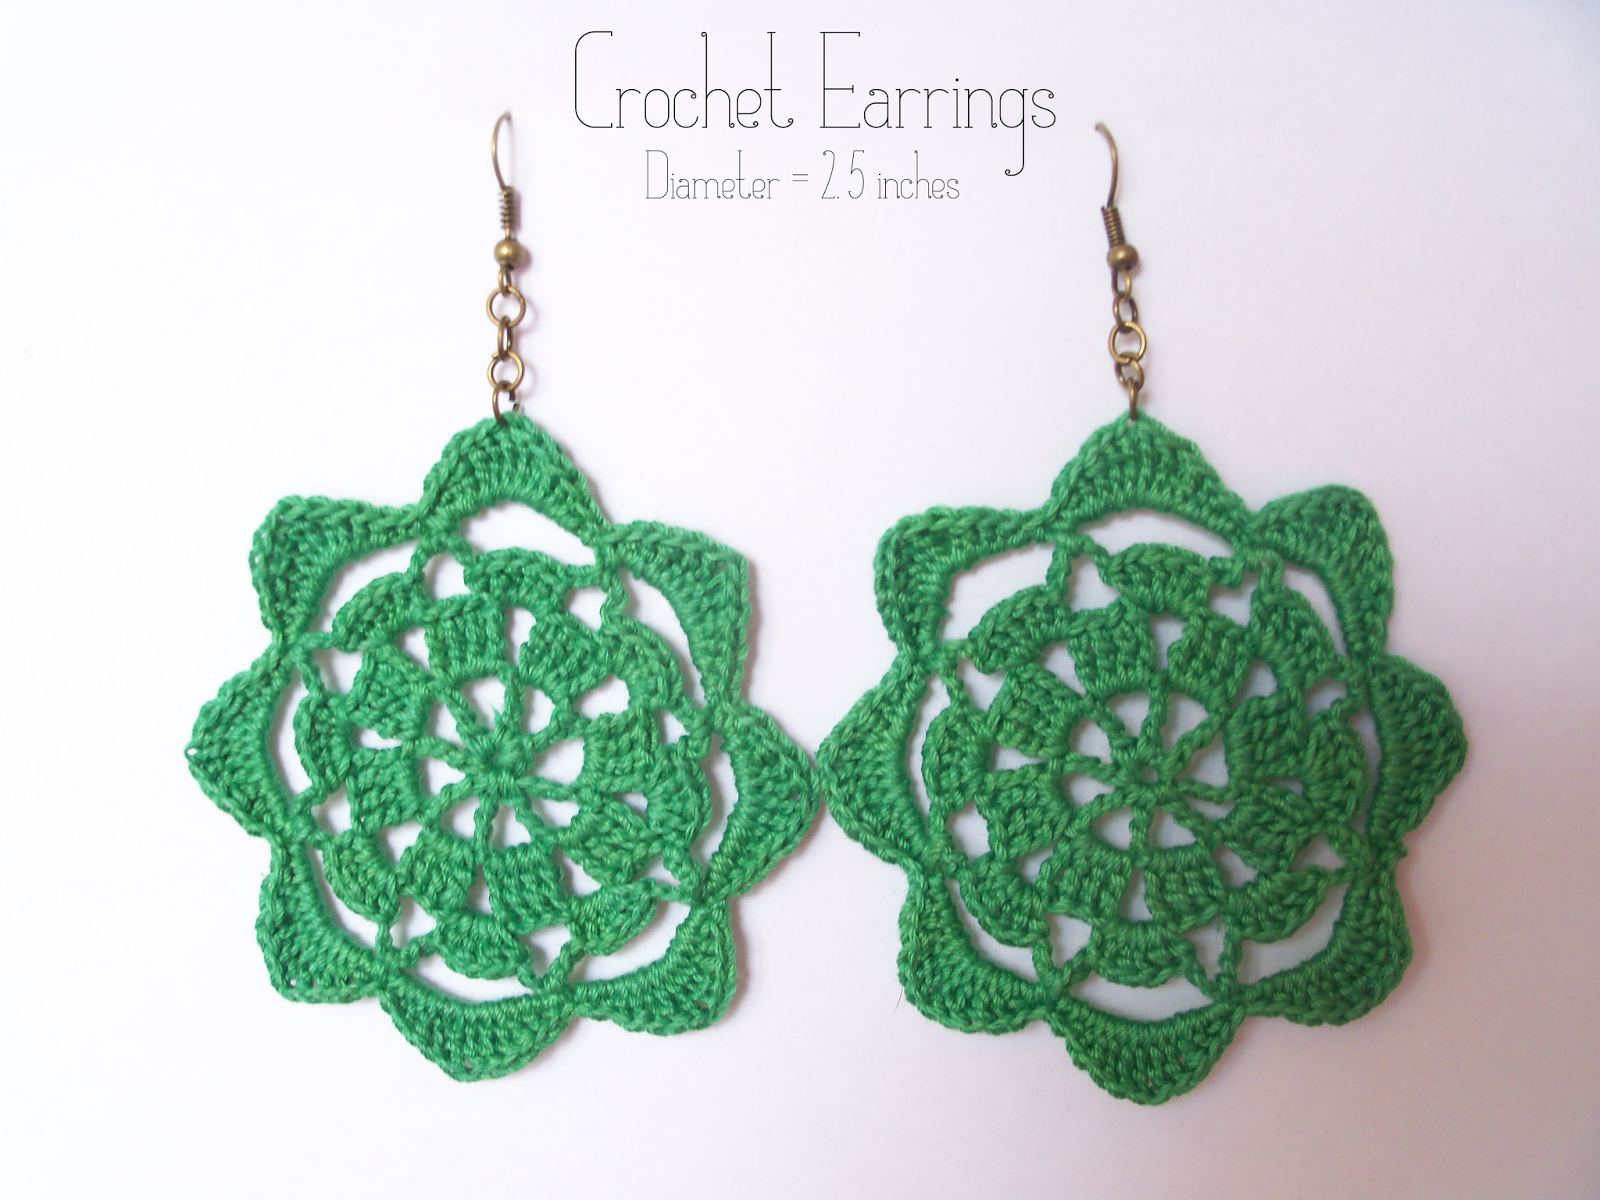 Crochet Earrings Pattern #3 | Flor, Croché y Aretes